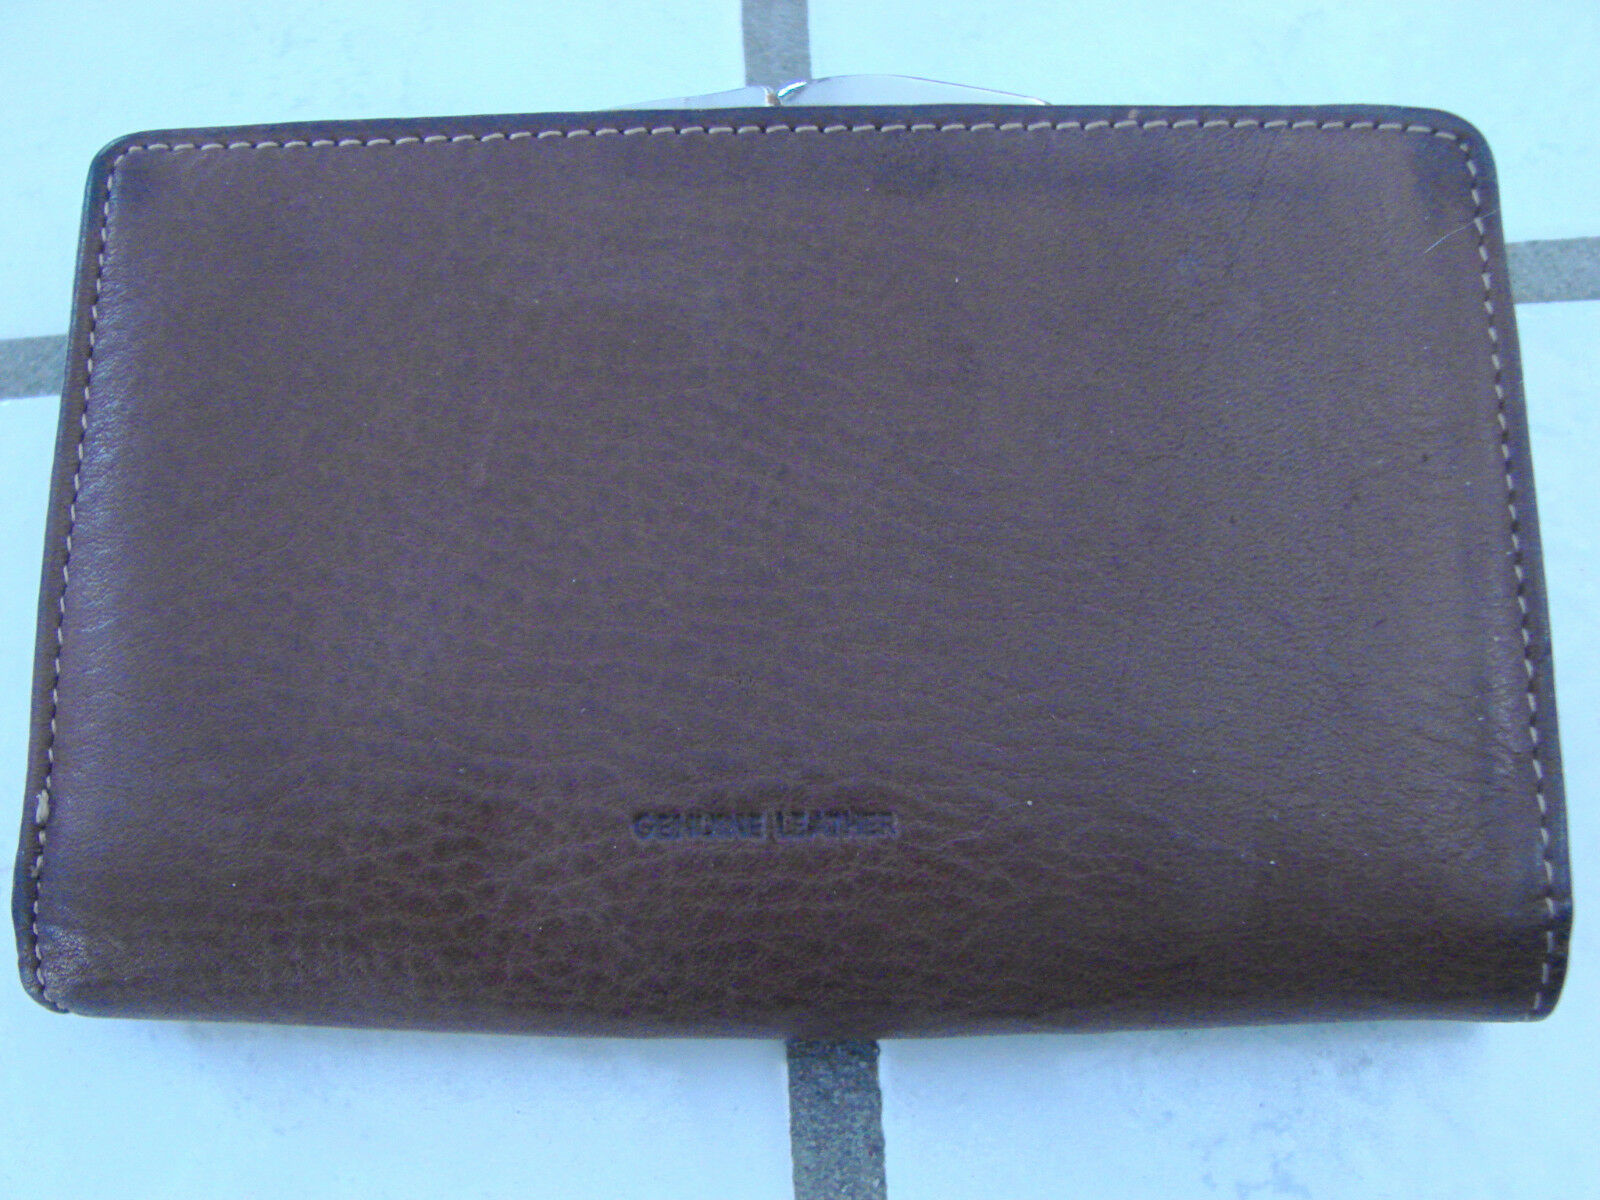 Coin purse wallet Mundi brown leather outer, credit card holder, coins ,